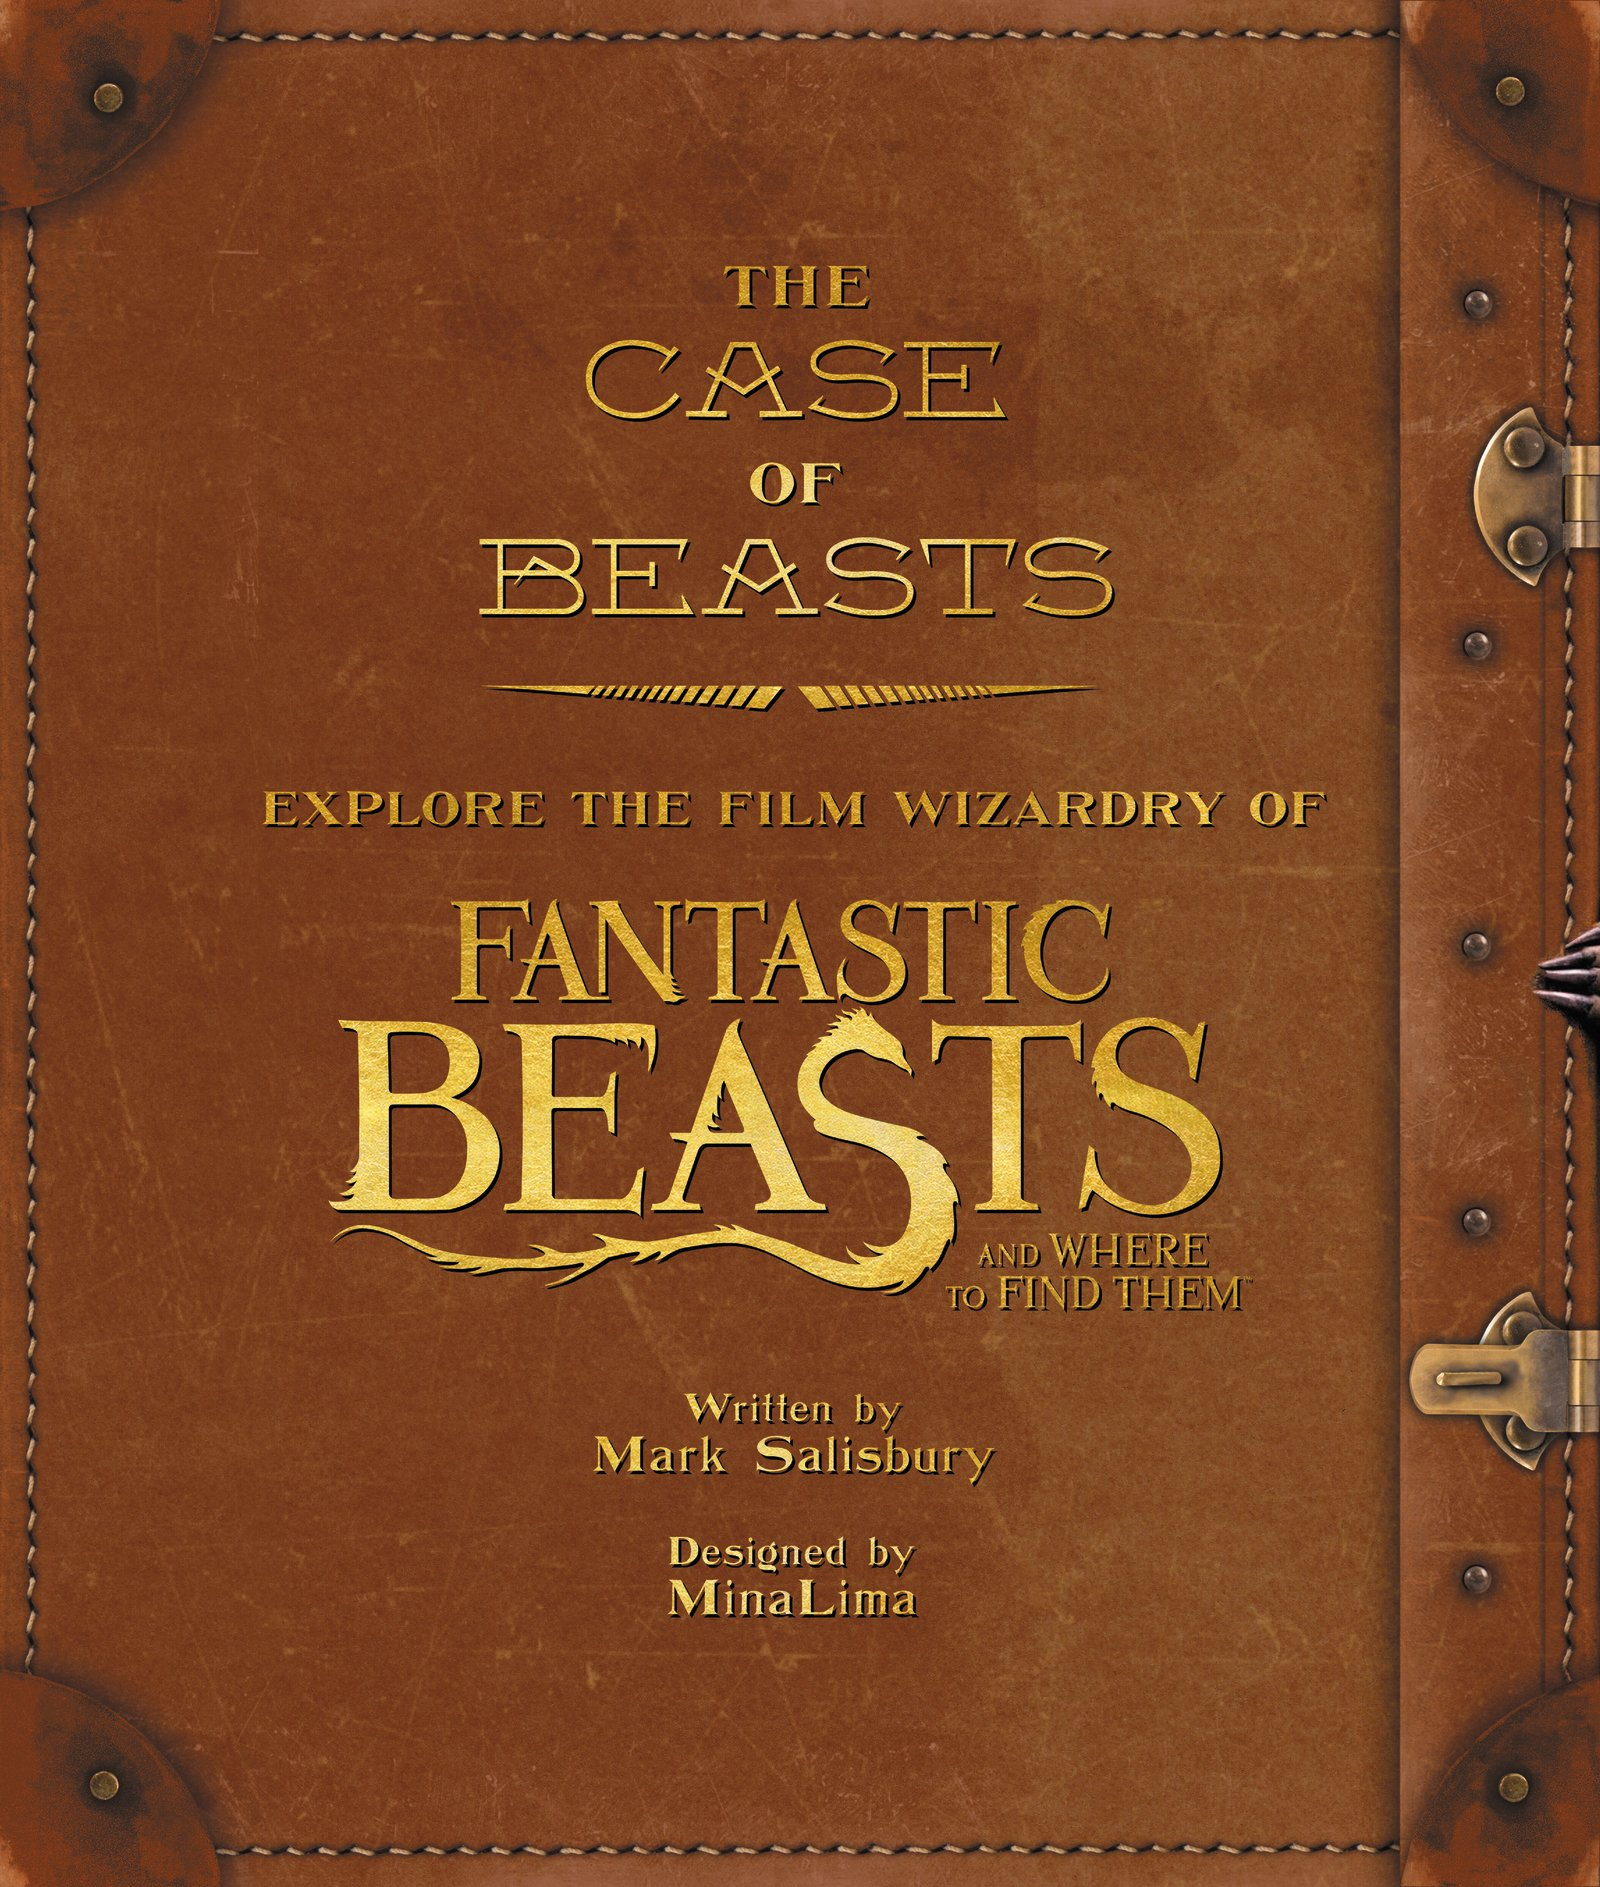 The Case of Beasts: Explore the Film Wizardry of Fantastic Beasts and Where to Find Them – Harry Potter – HPB